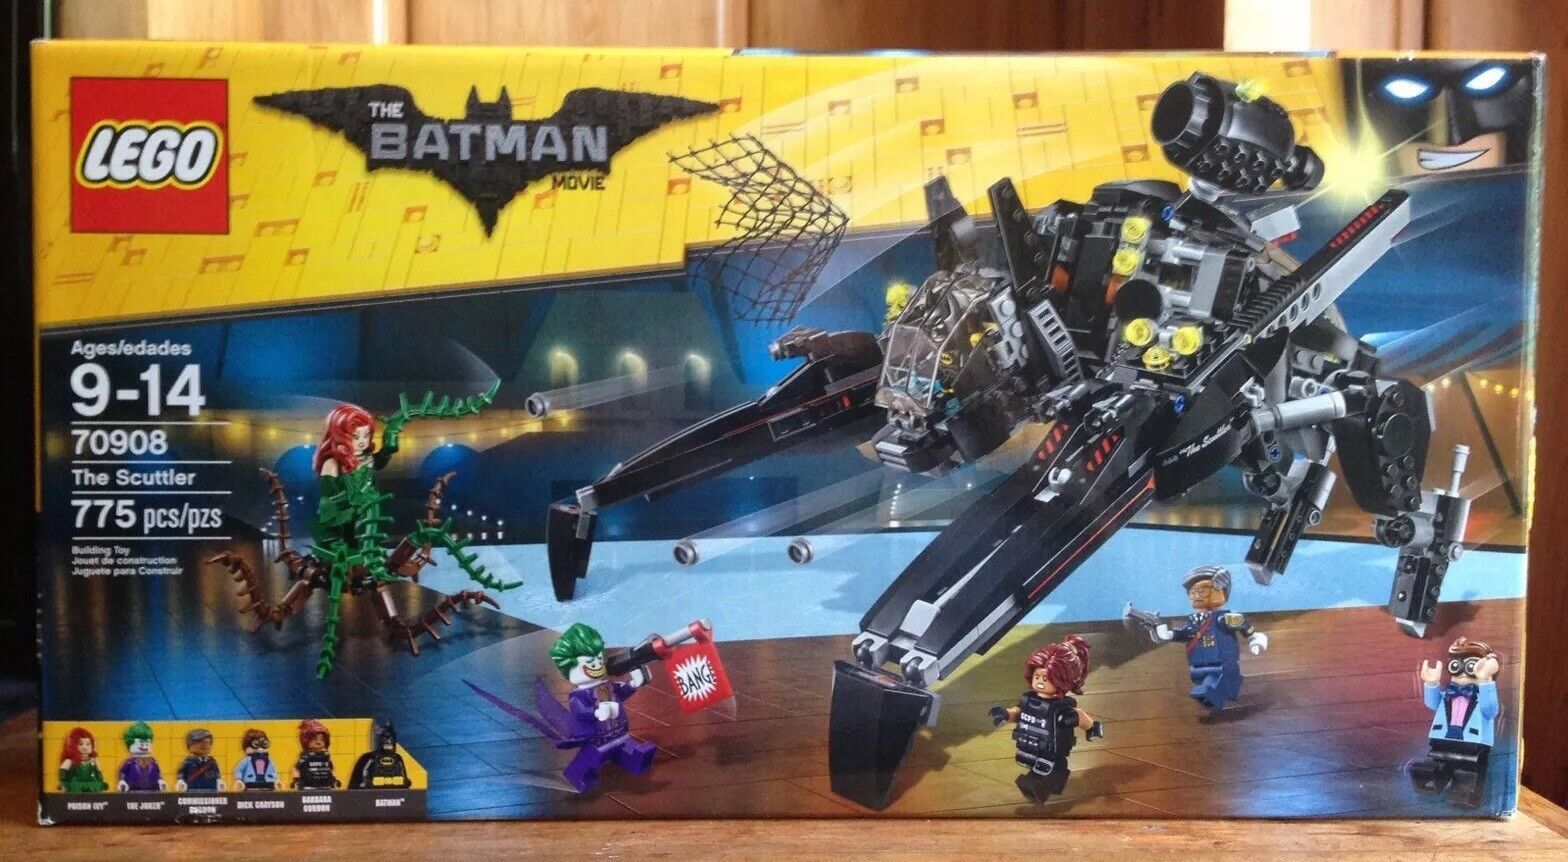 Nqagmy3138 100Complet Scuttler The Lego Pieces 70908 775 Batman XPNOk08nw